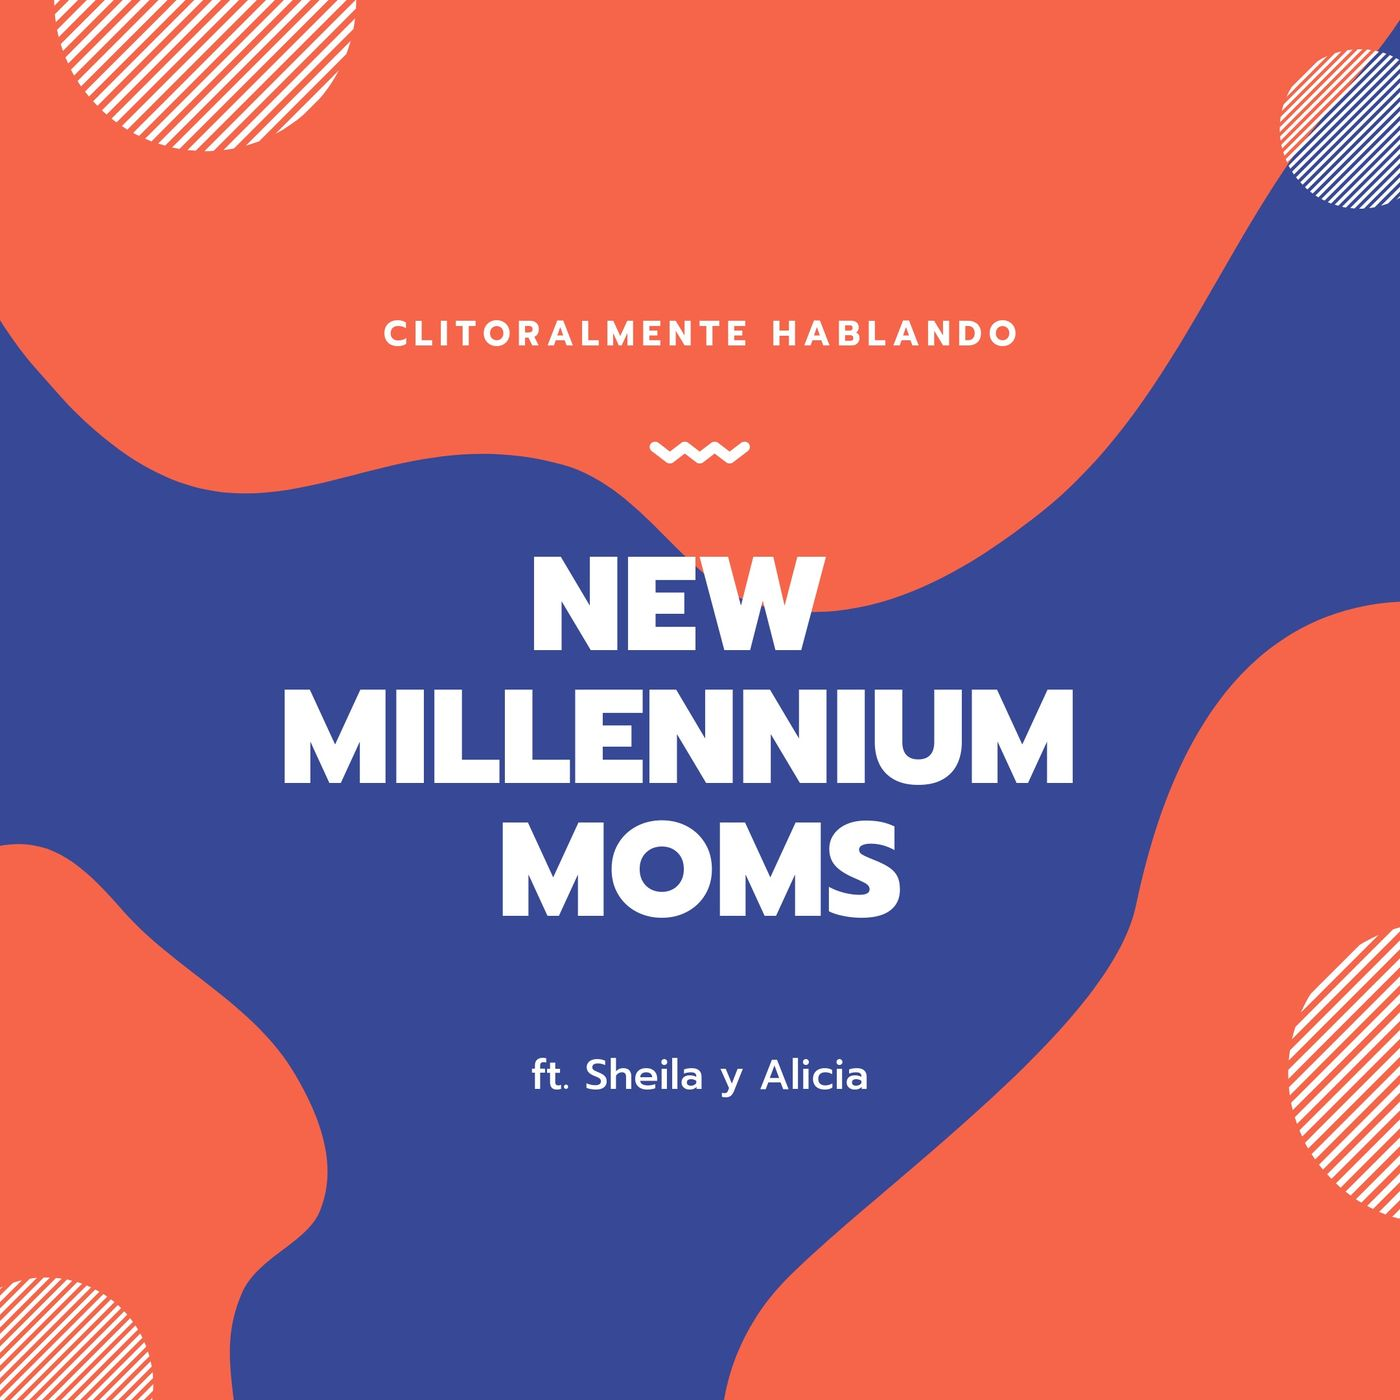 NEW MILLENIUM MOMS ft. Sheila y Alicia